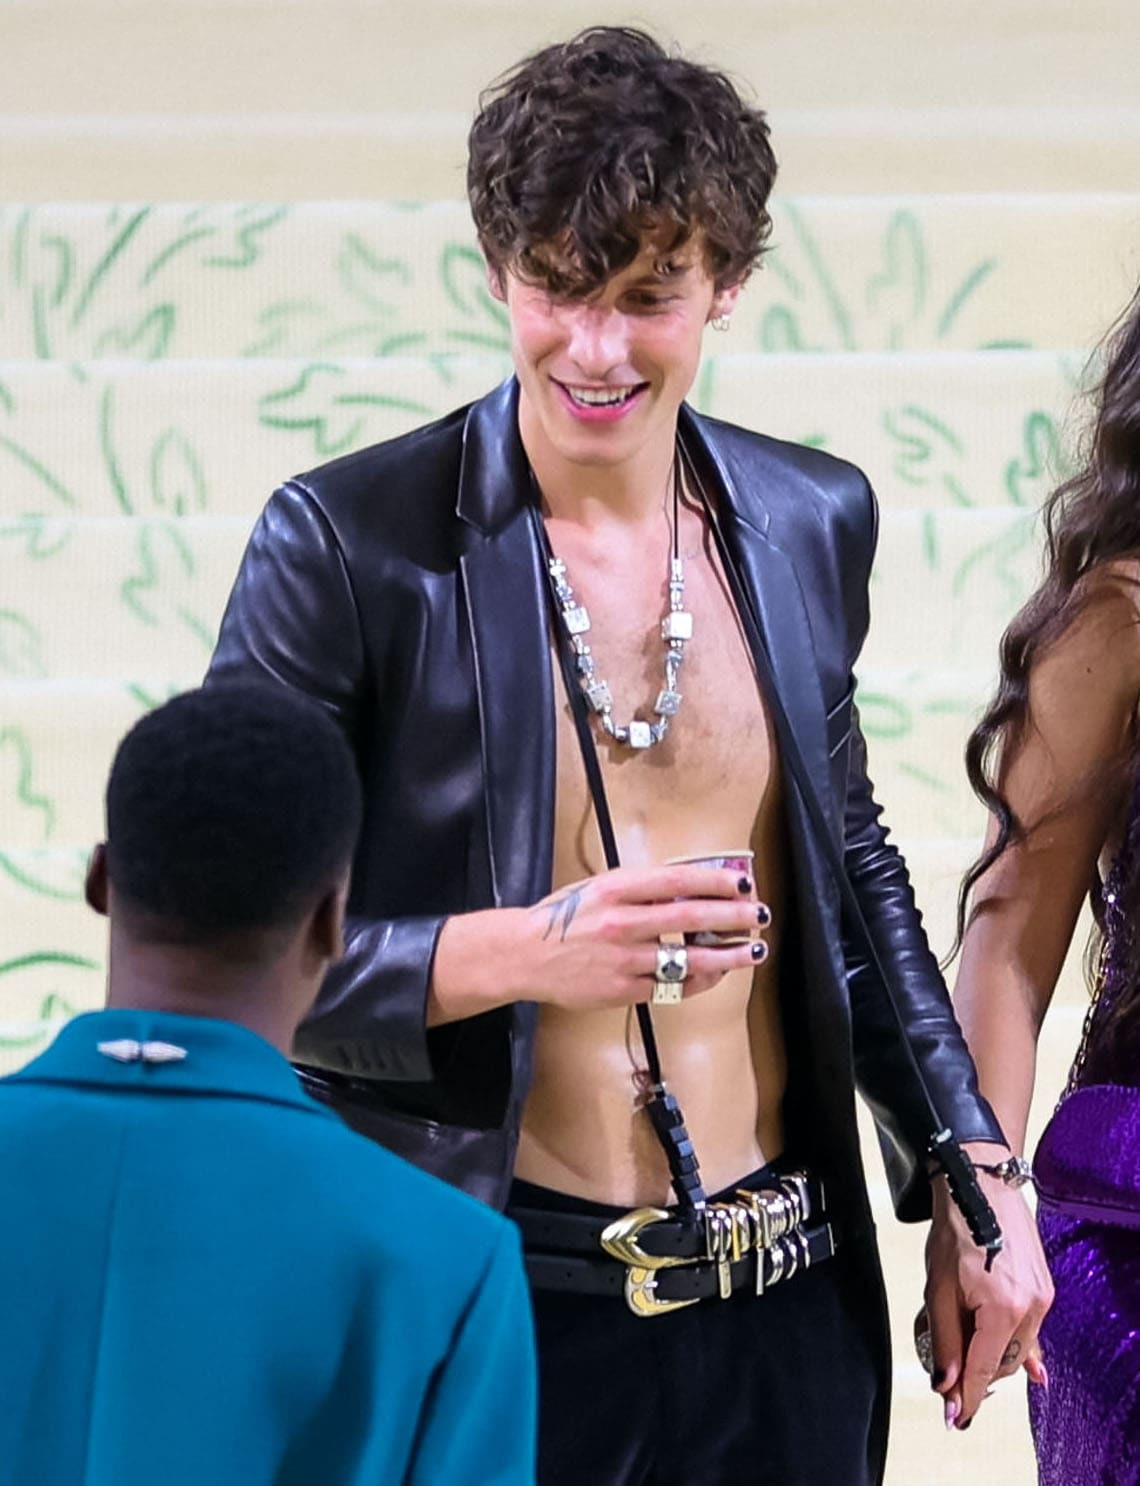 Shawn Mendes is shirtless underneath his Michael Kors jacket